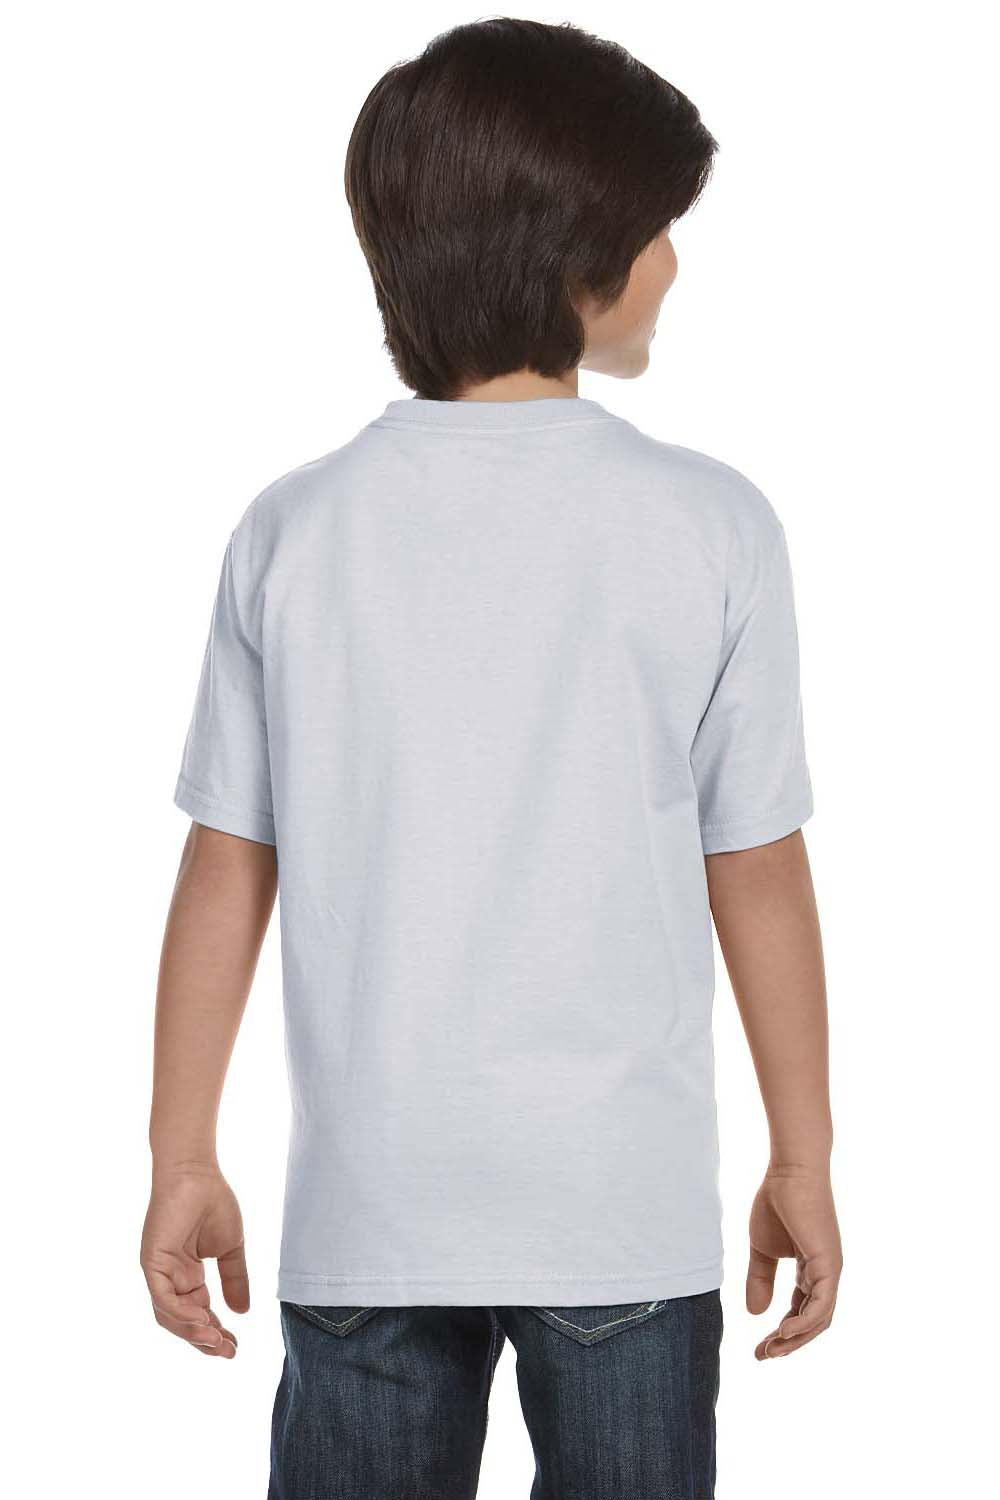 Hanes 5480 Youth ComfortSoft Short Sleeve Crewneck T-Shirt Ash Grey Back